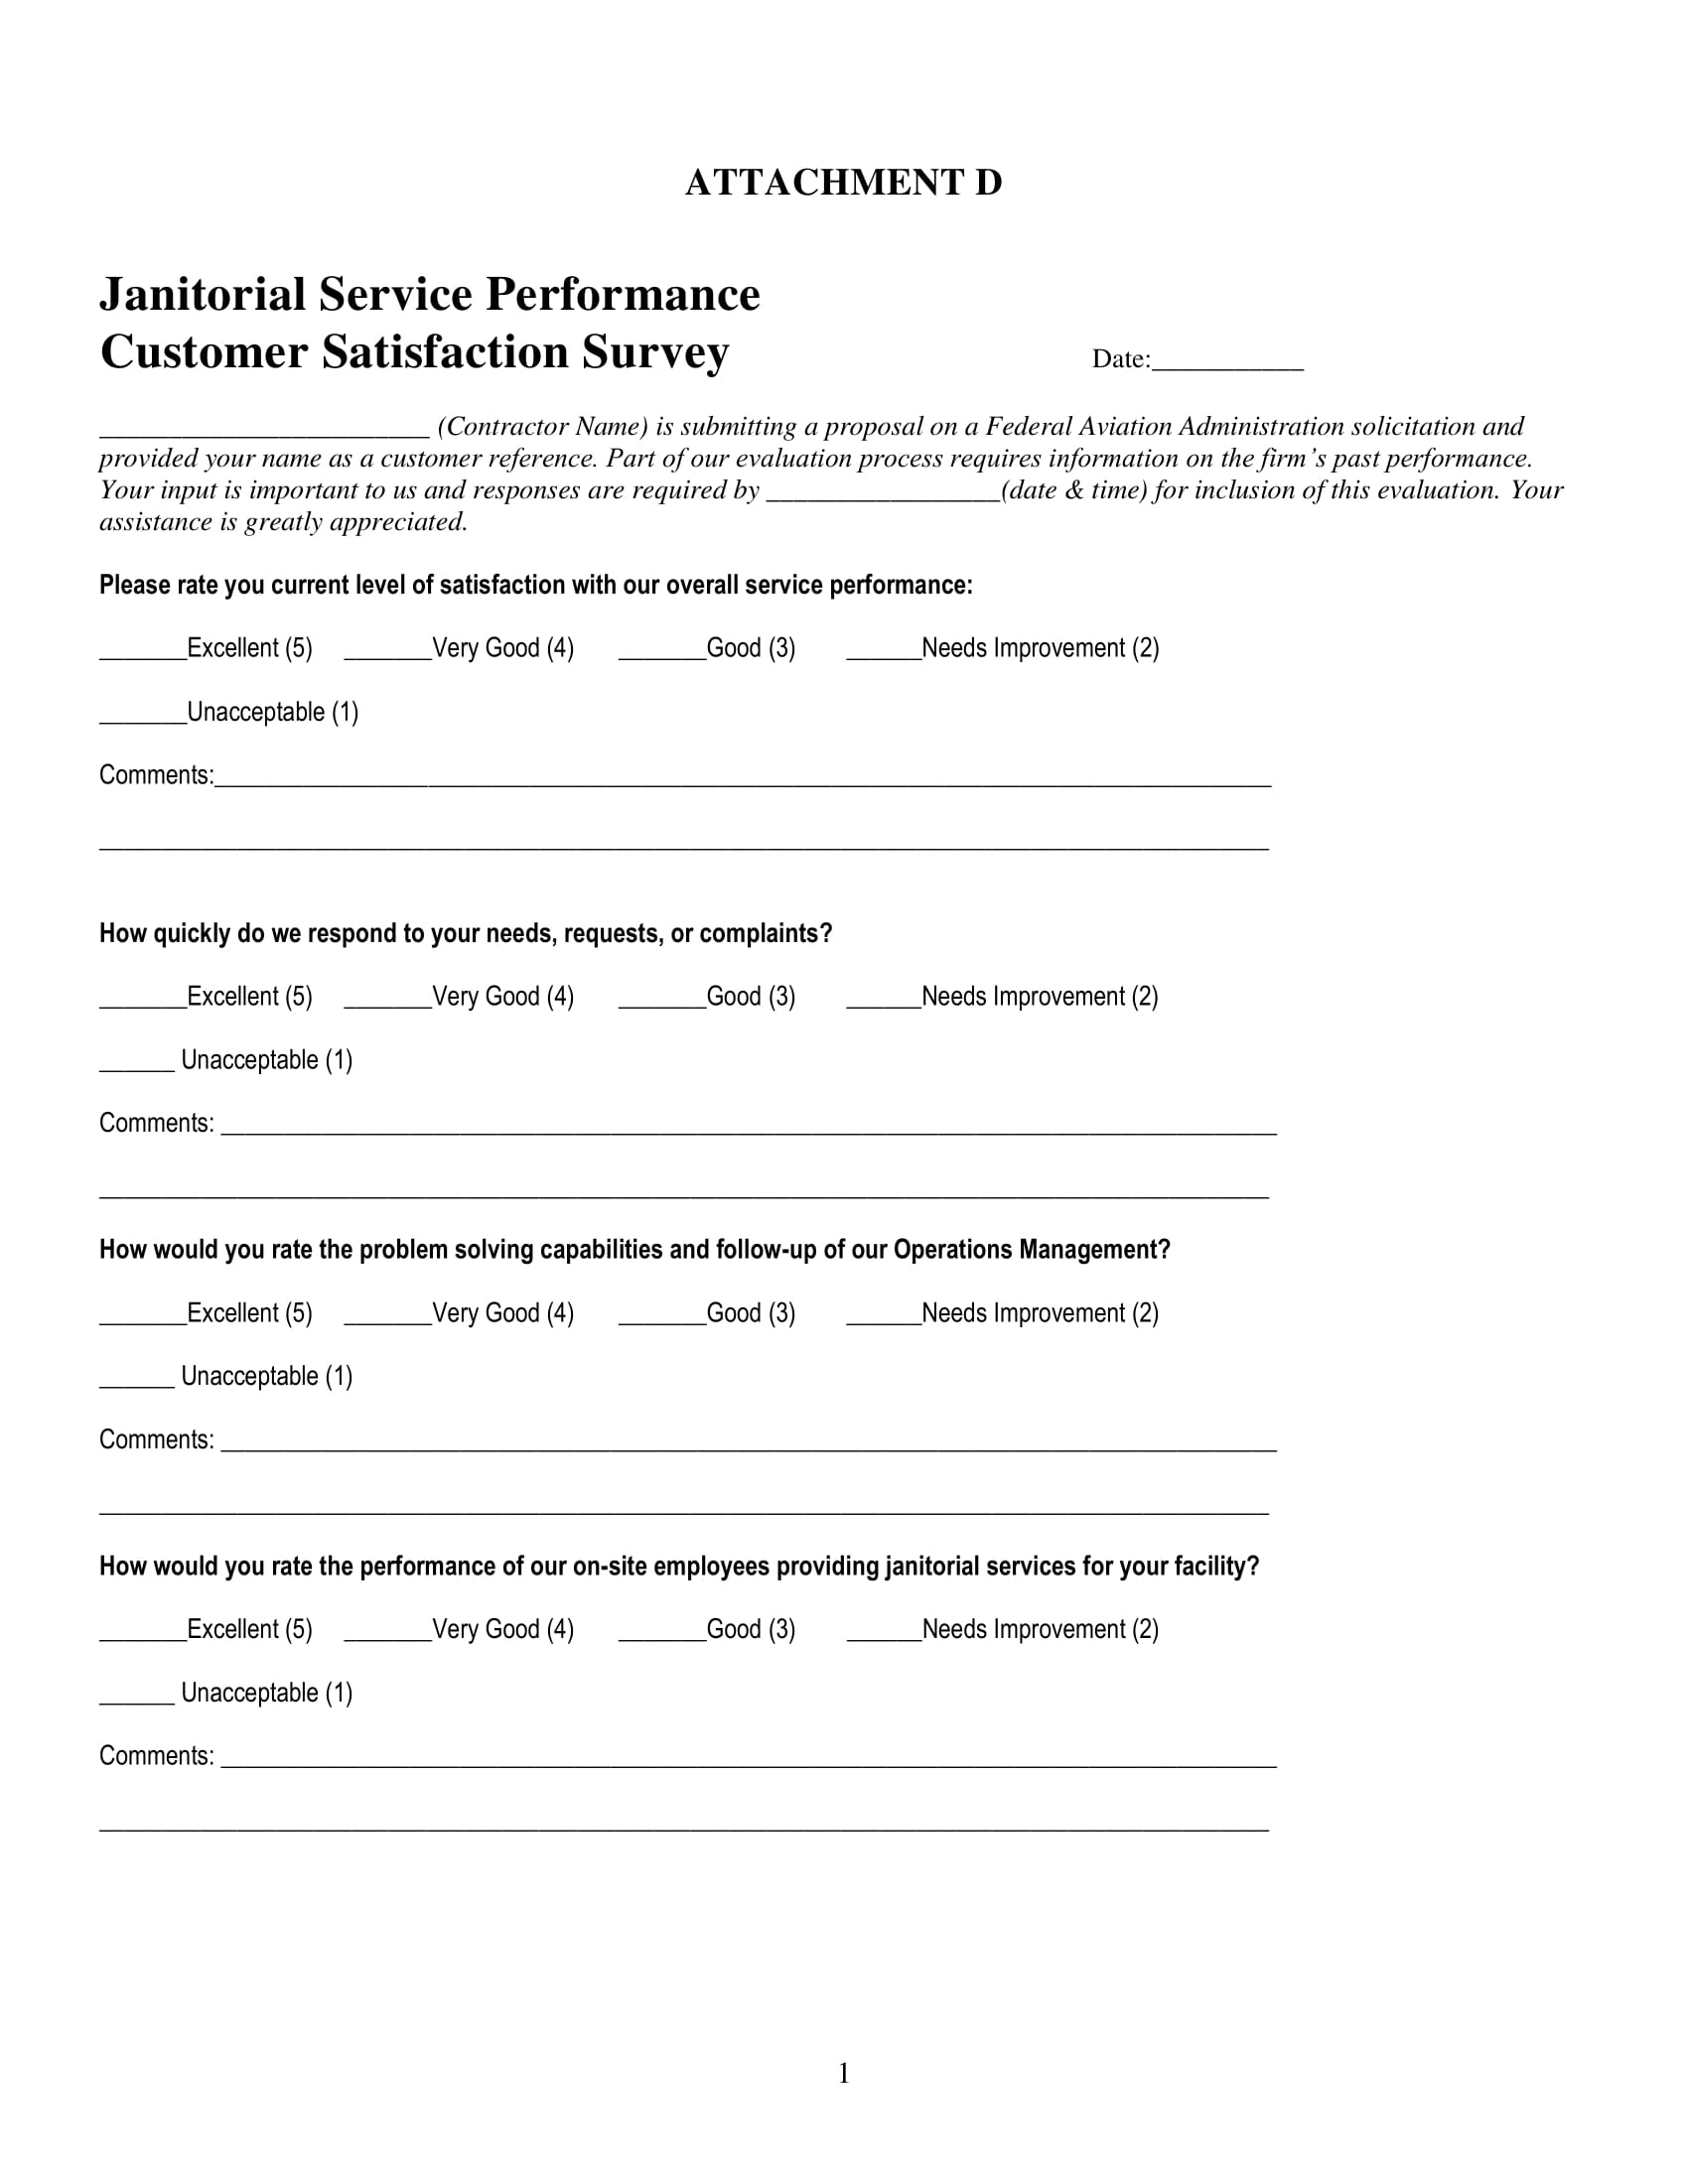 service performance customer satisfaction survey form 1